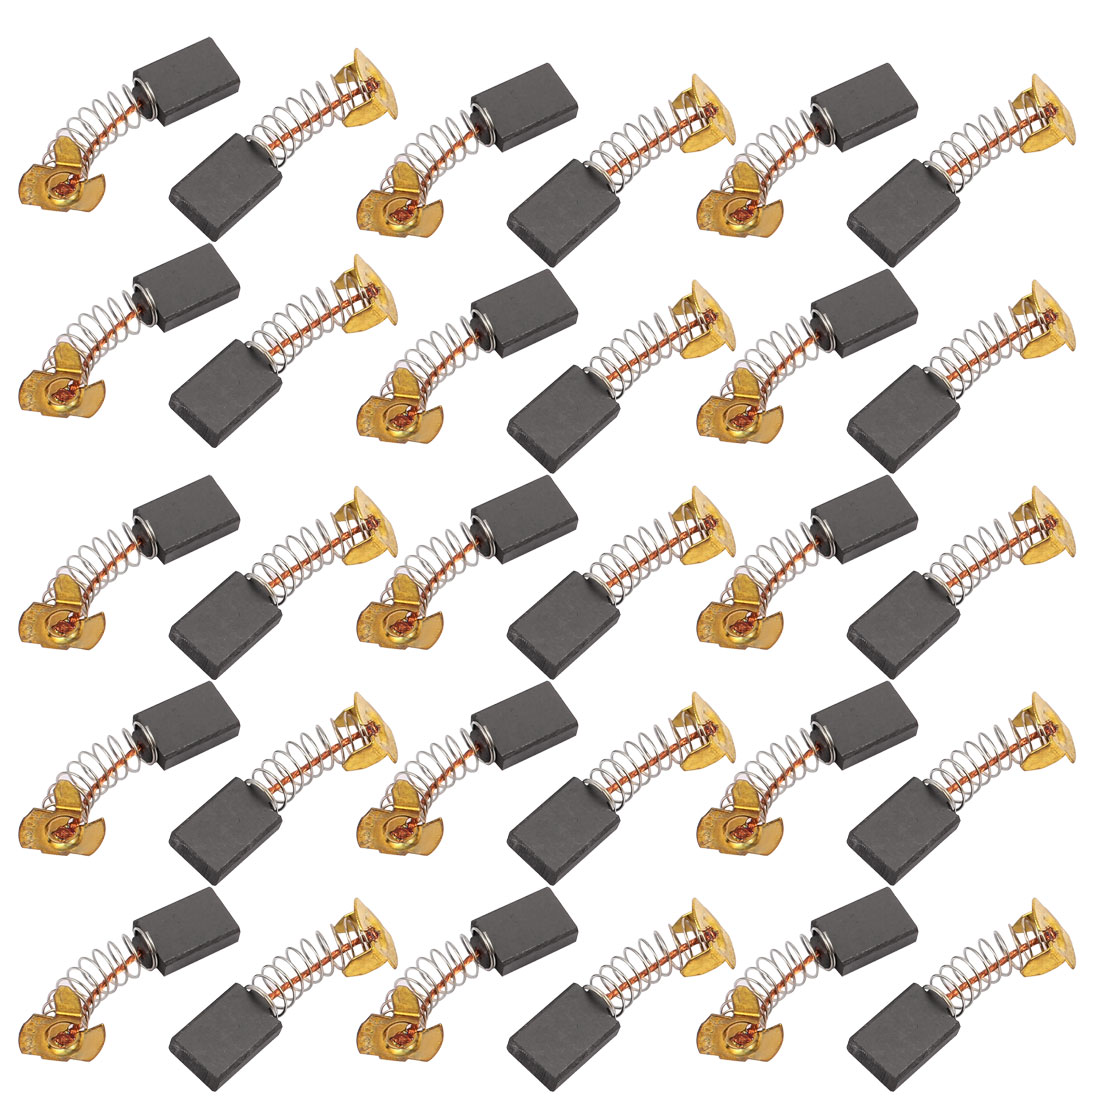 15 Pairs Electric Drill Motor Tool Carbon Brush 5 x 11 x 15mm Brass Tone w Spring